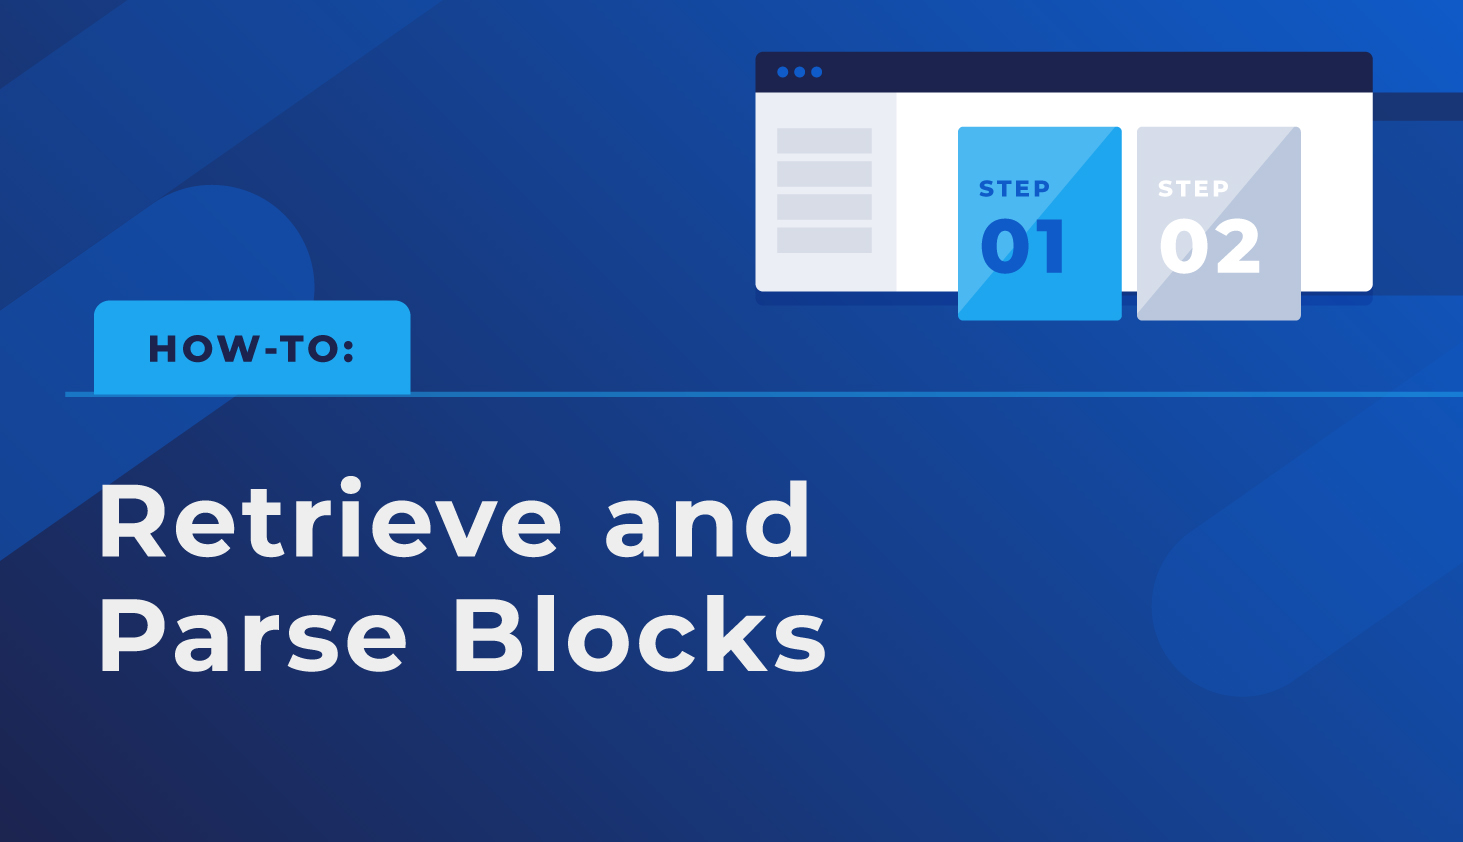 How-to: Retrieve and Parse Blocks